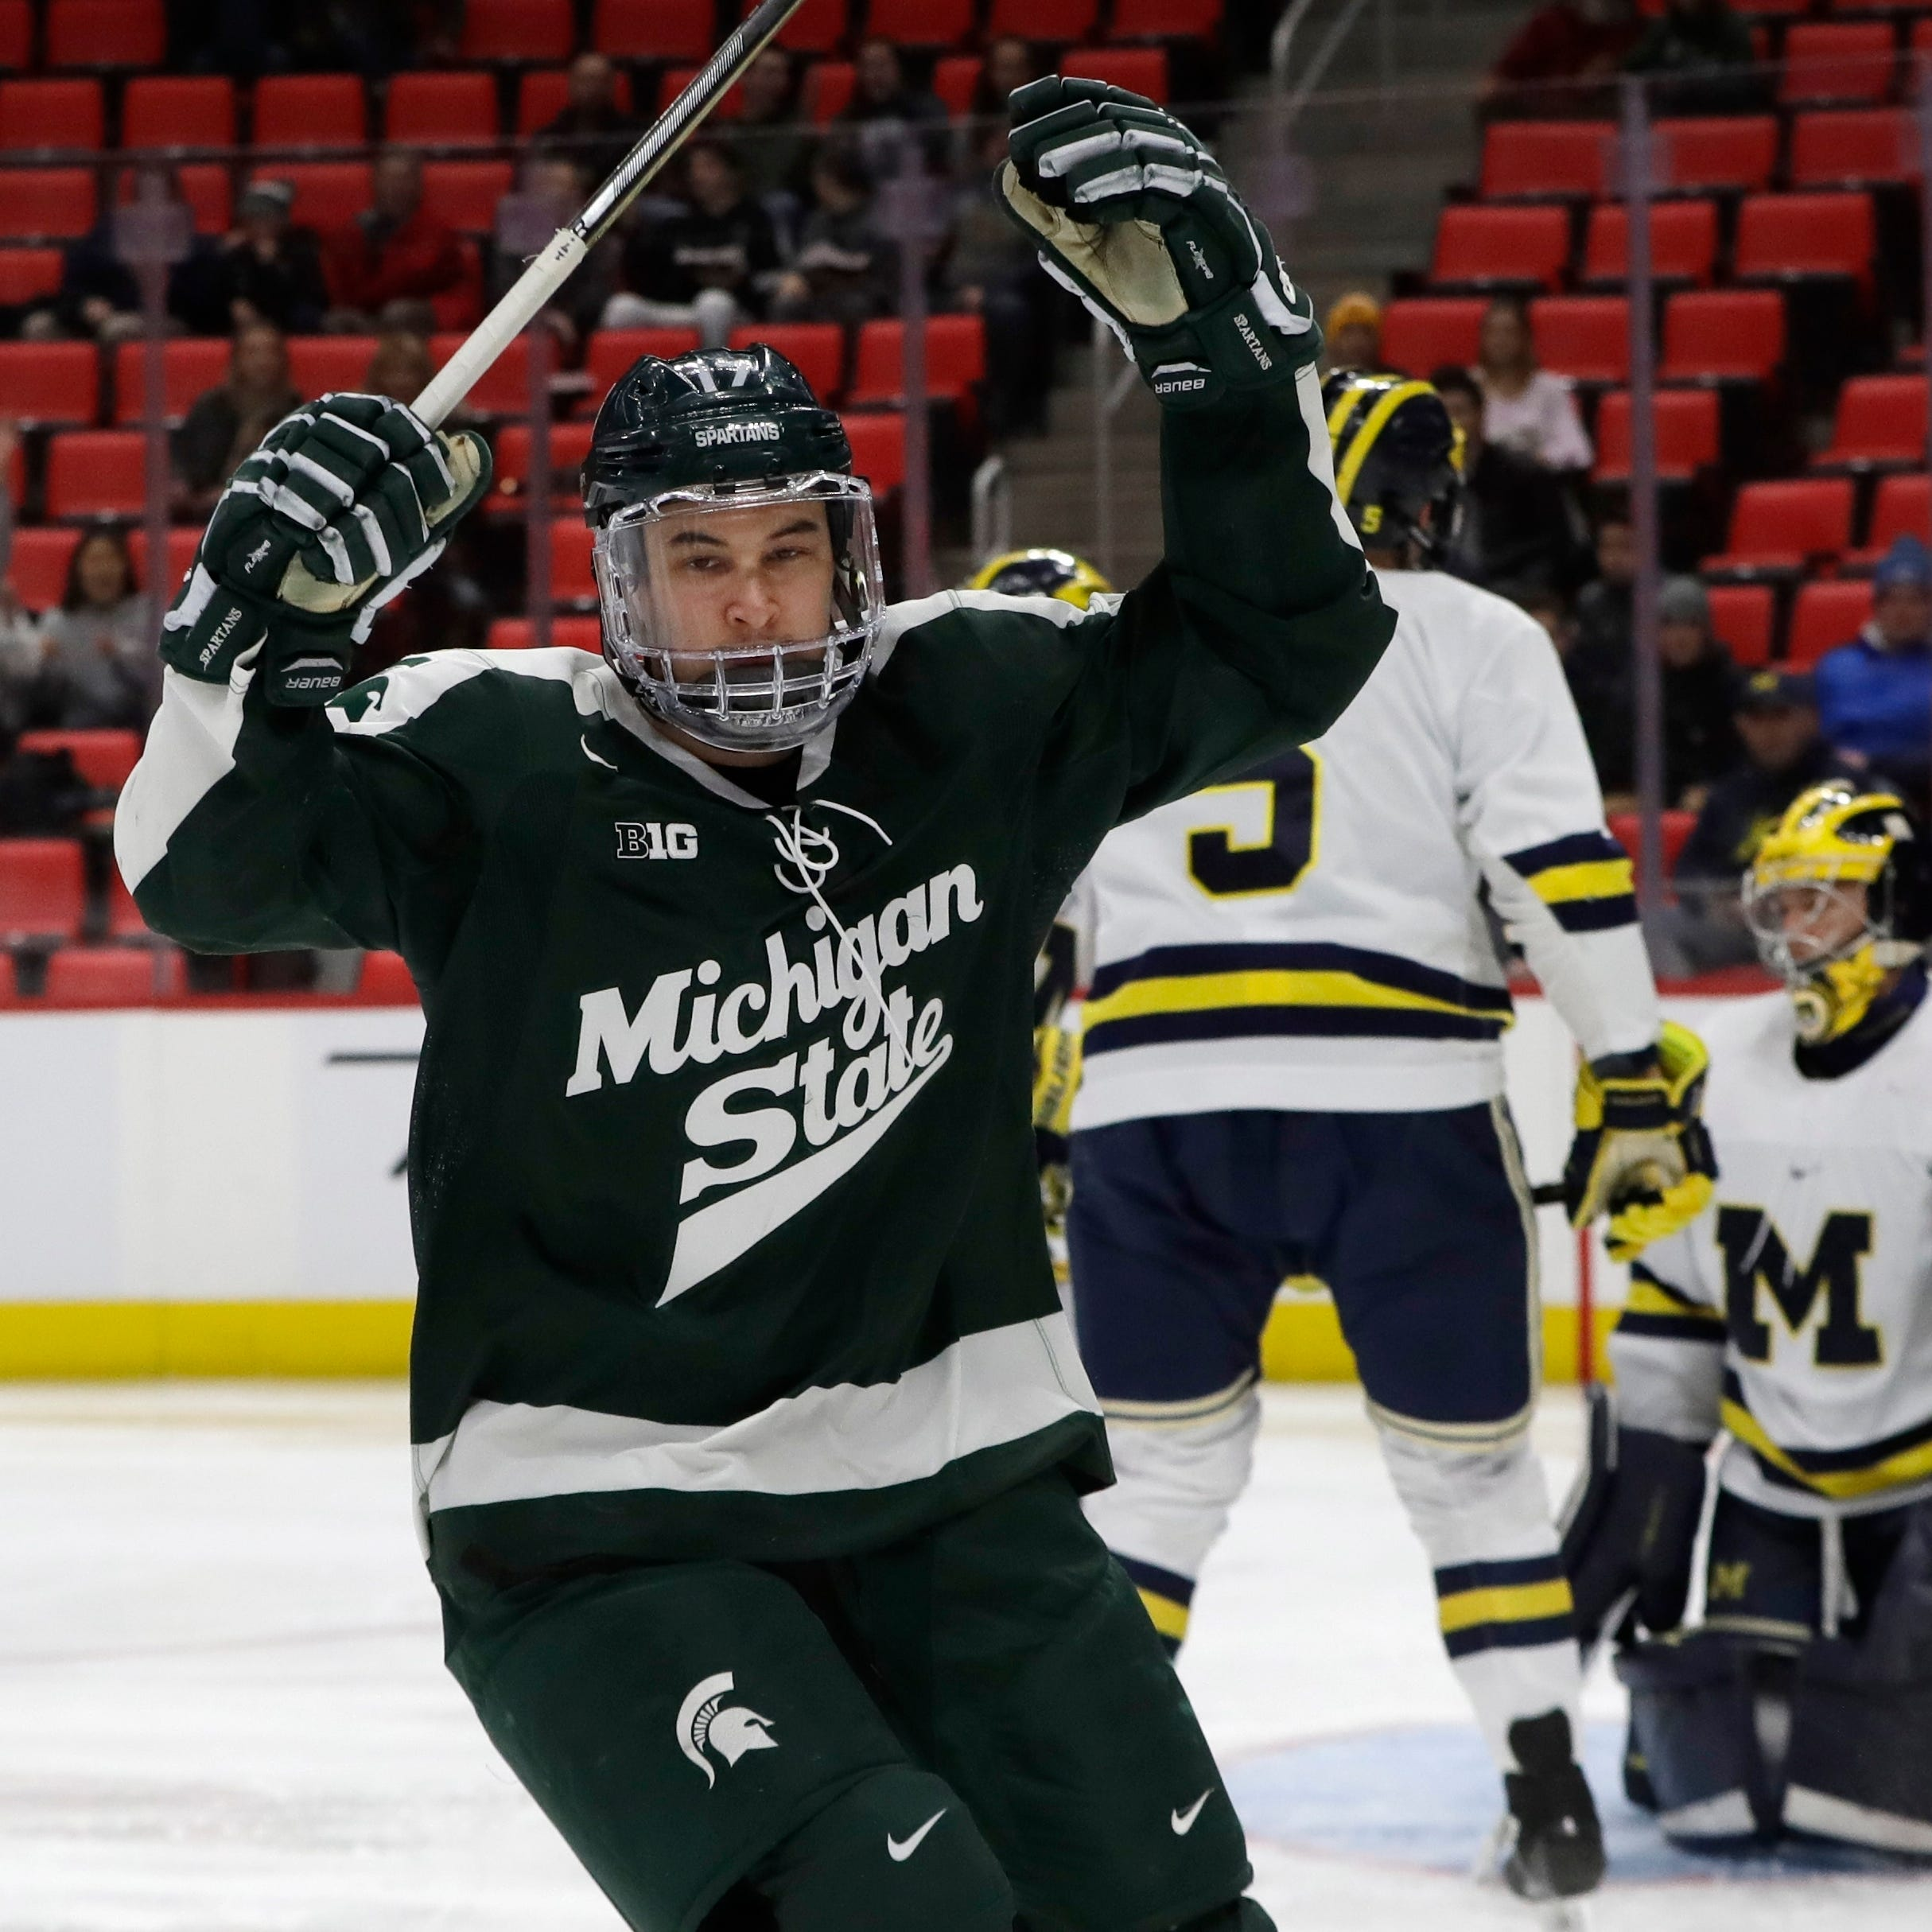 Red Wings sign Michigan State's Taro Hirose, Princeton's Ryan Kuffner as undrafted free agents